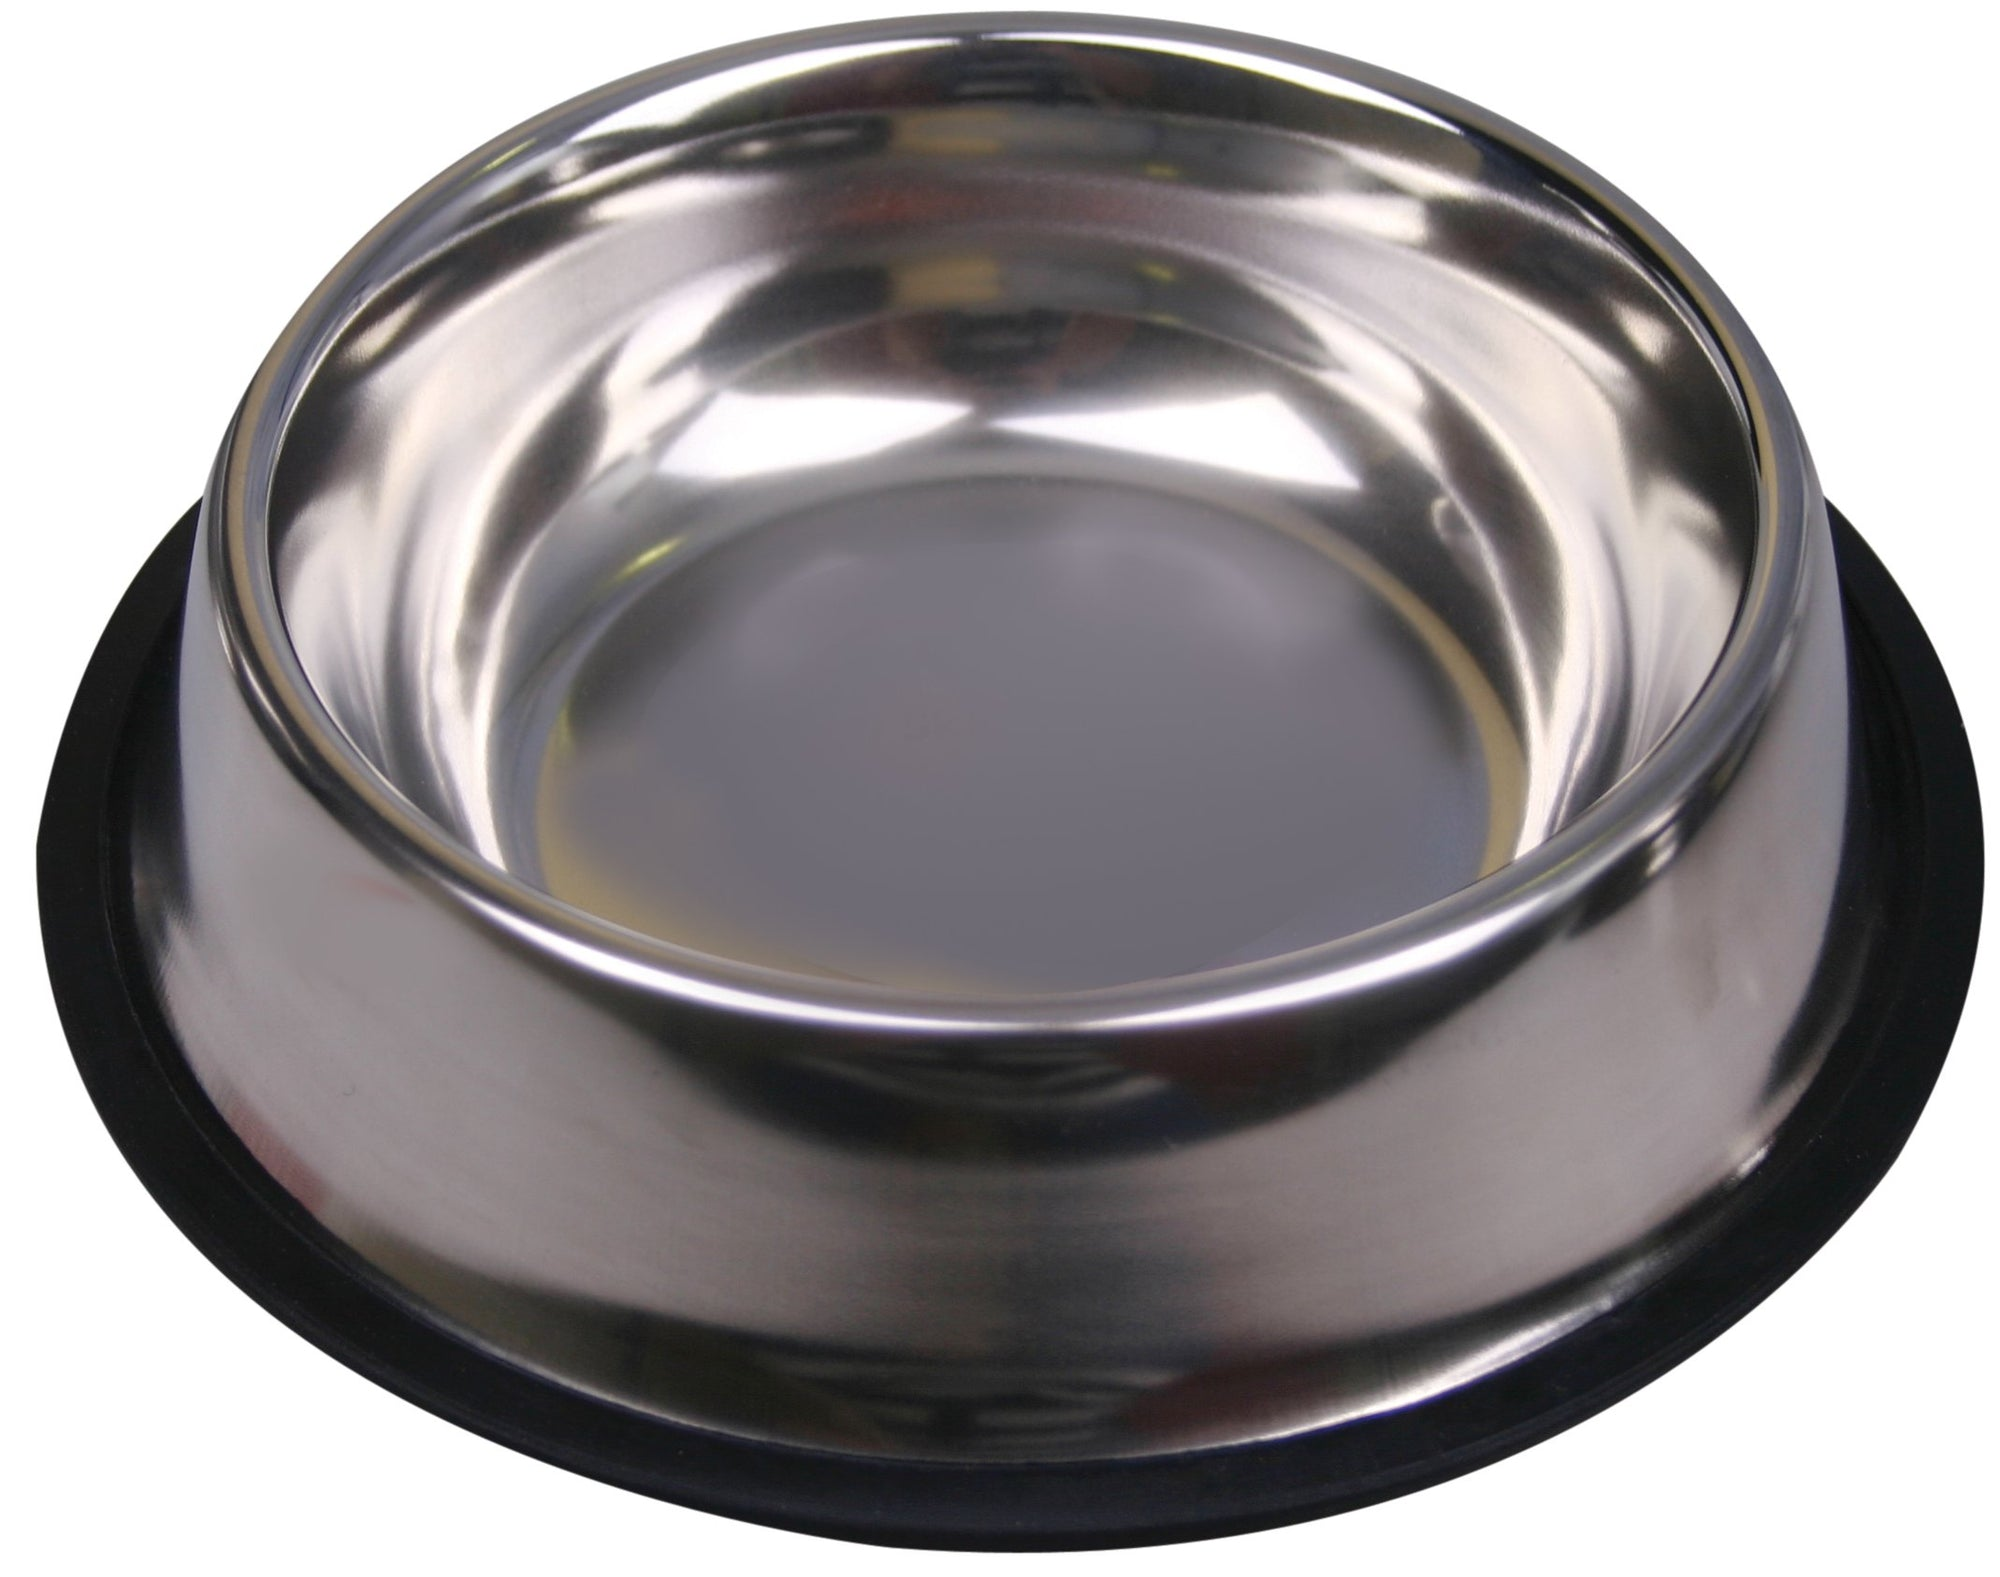 Pet One Bowl Anti Skid Anti Tip Stainless Steel